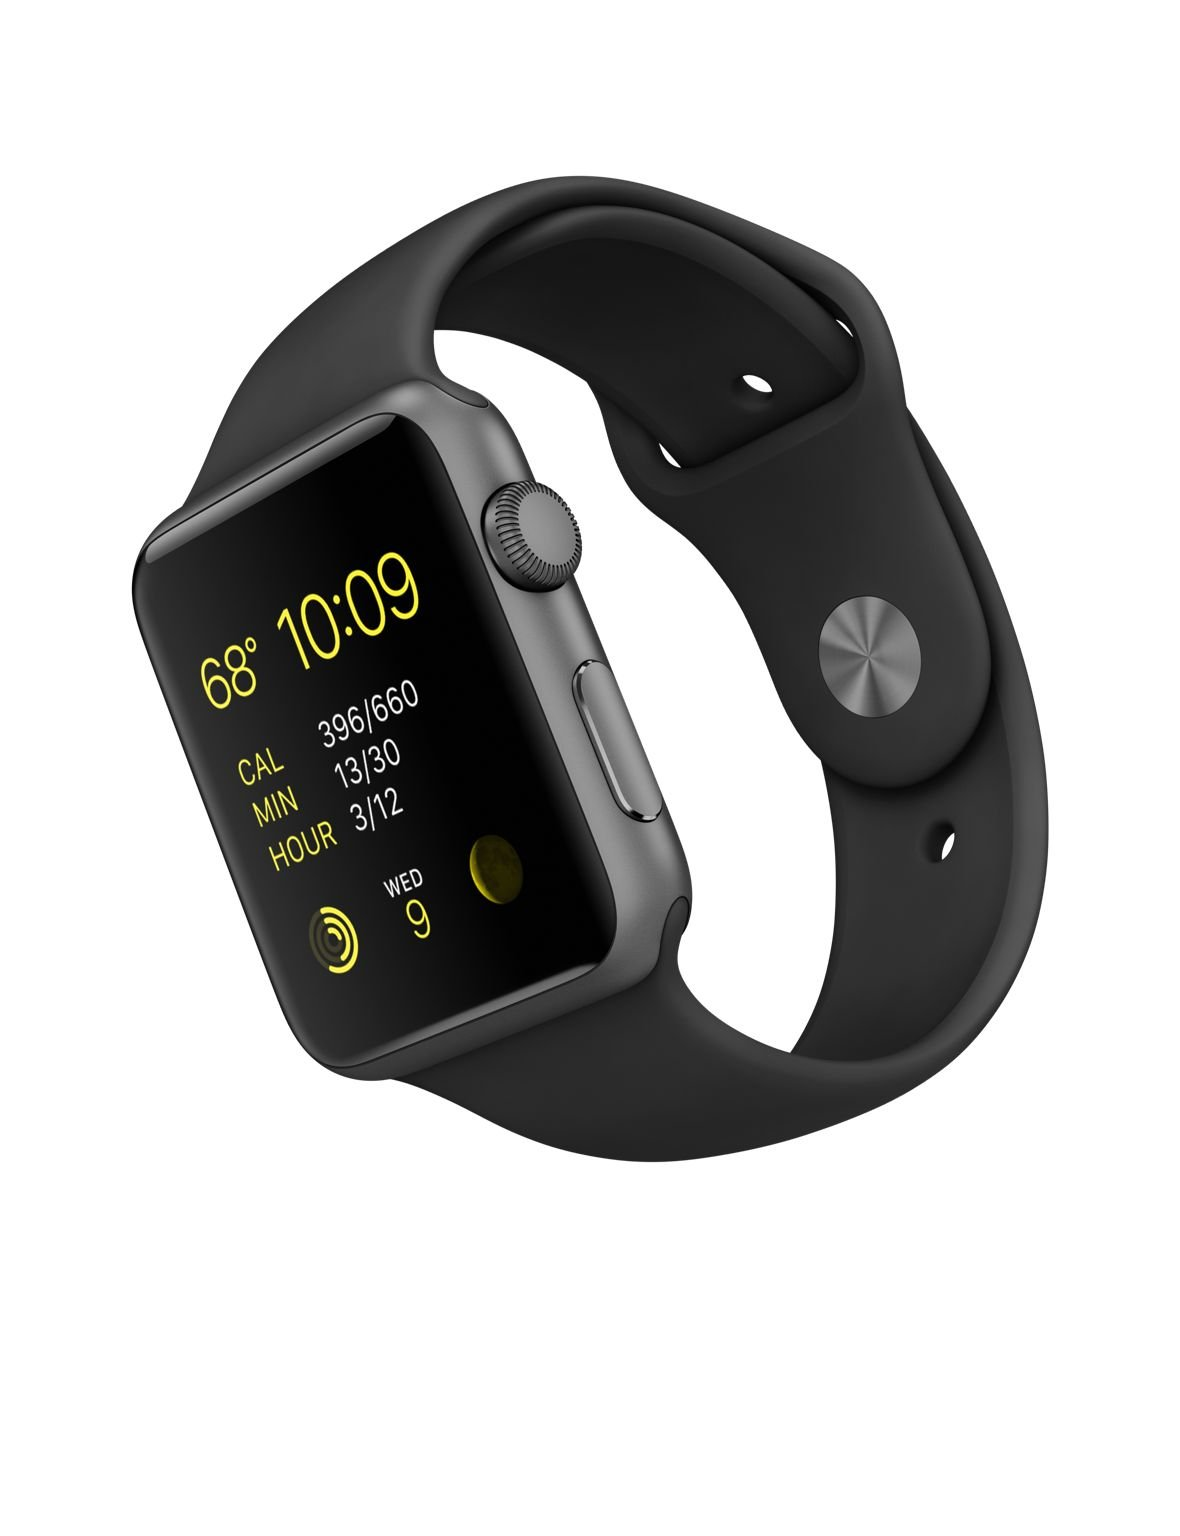 Apple Watch 42mm Space Gray Aluminum Case Black Sport Band by Apple (Image #2)